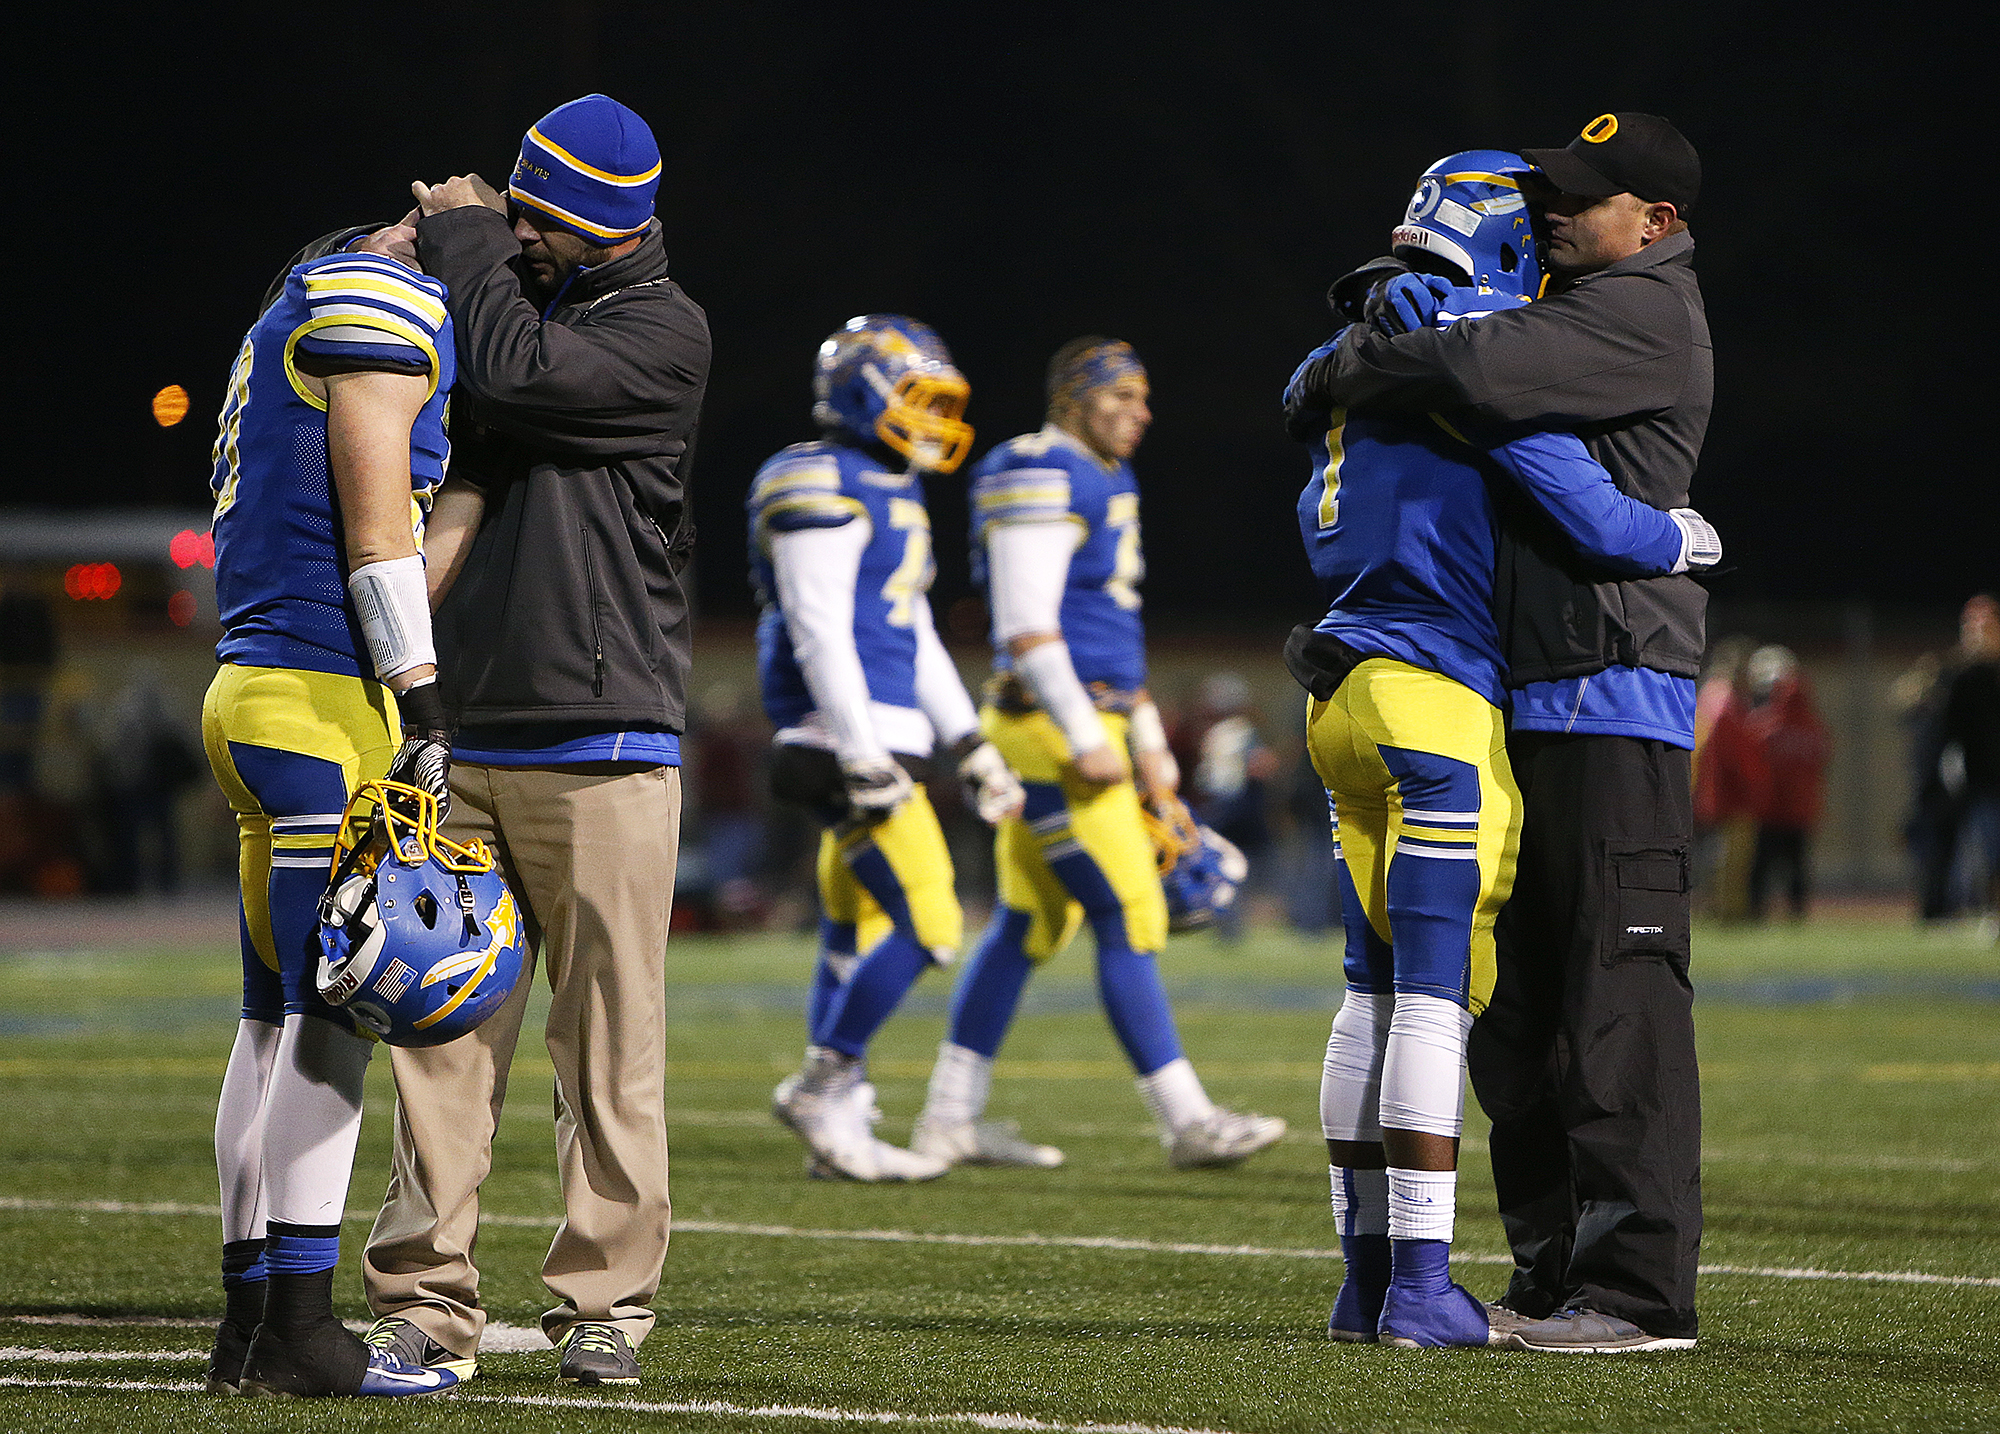 The Olentangy High School Braves react to a rough loss to Cincinnati DeSalle in the division II state semifinals at Welcome Stadium in Dayton, Ohio, Friday, November 28, 2014.